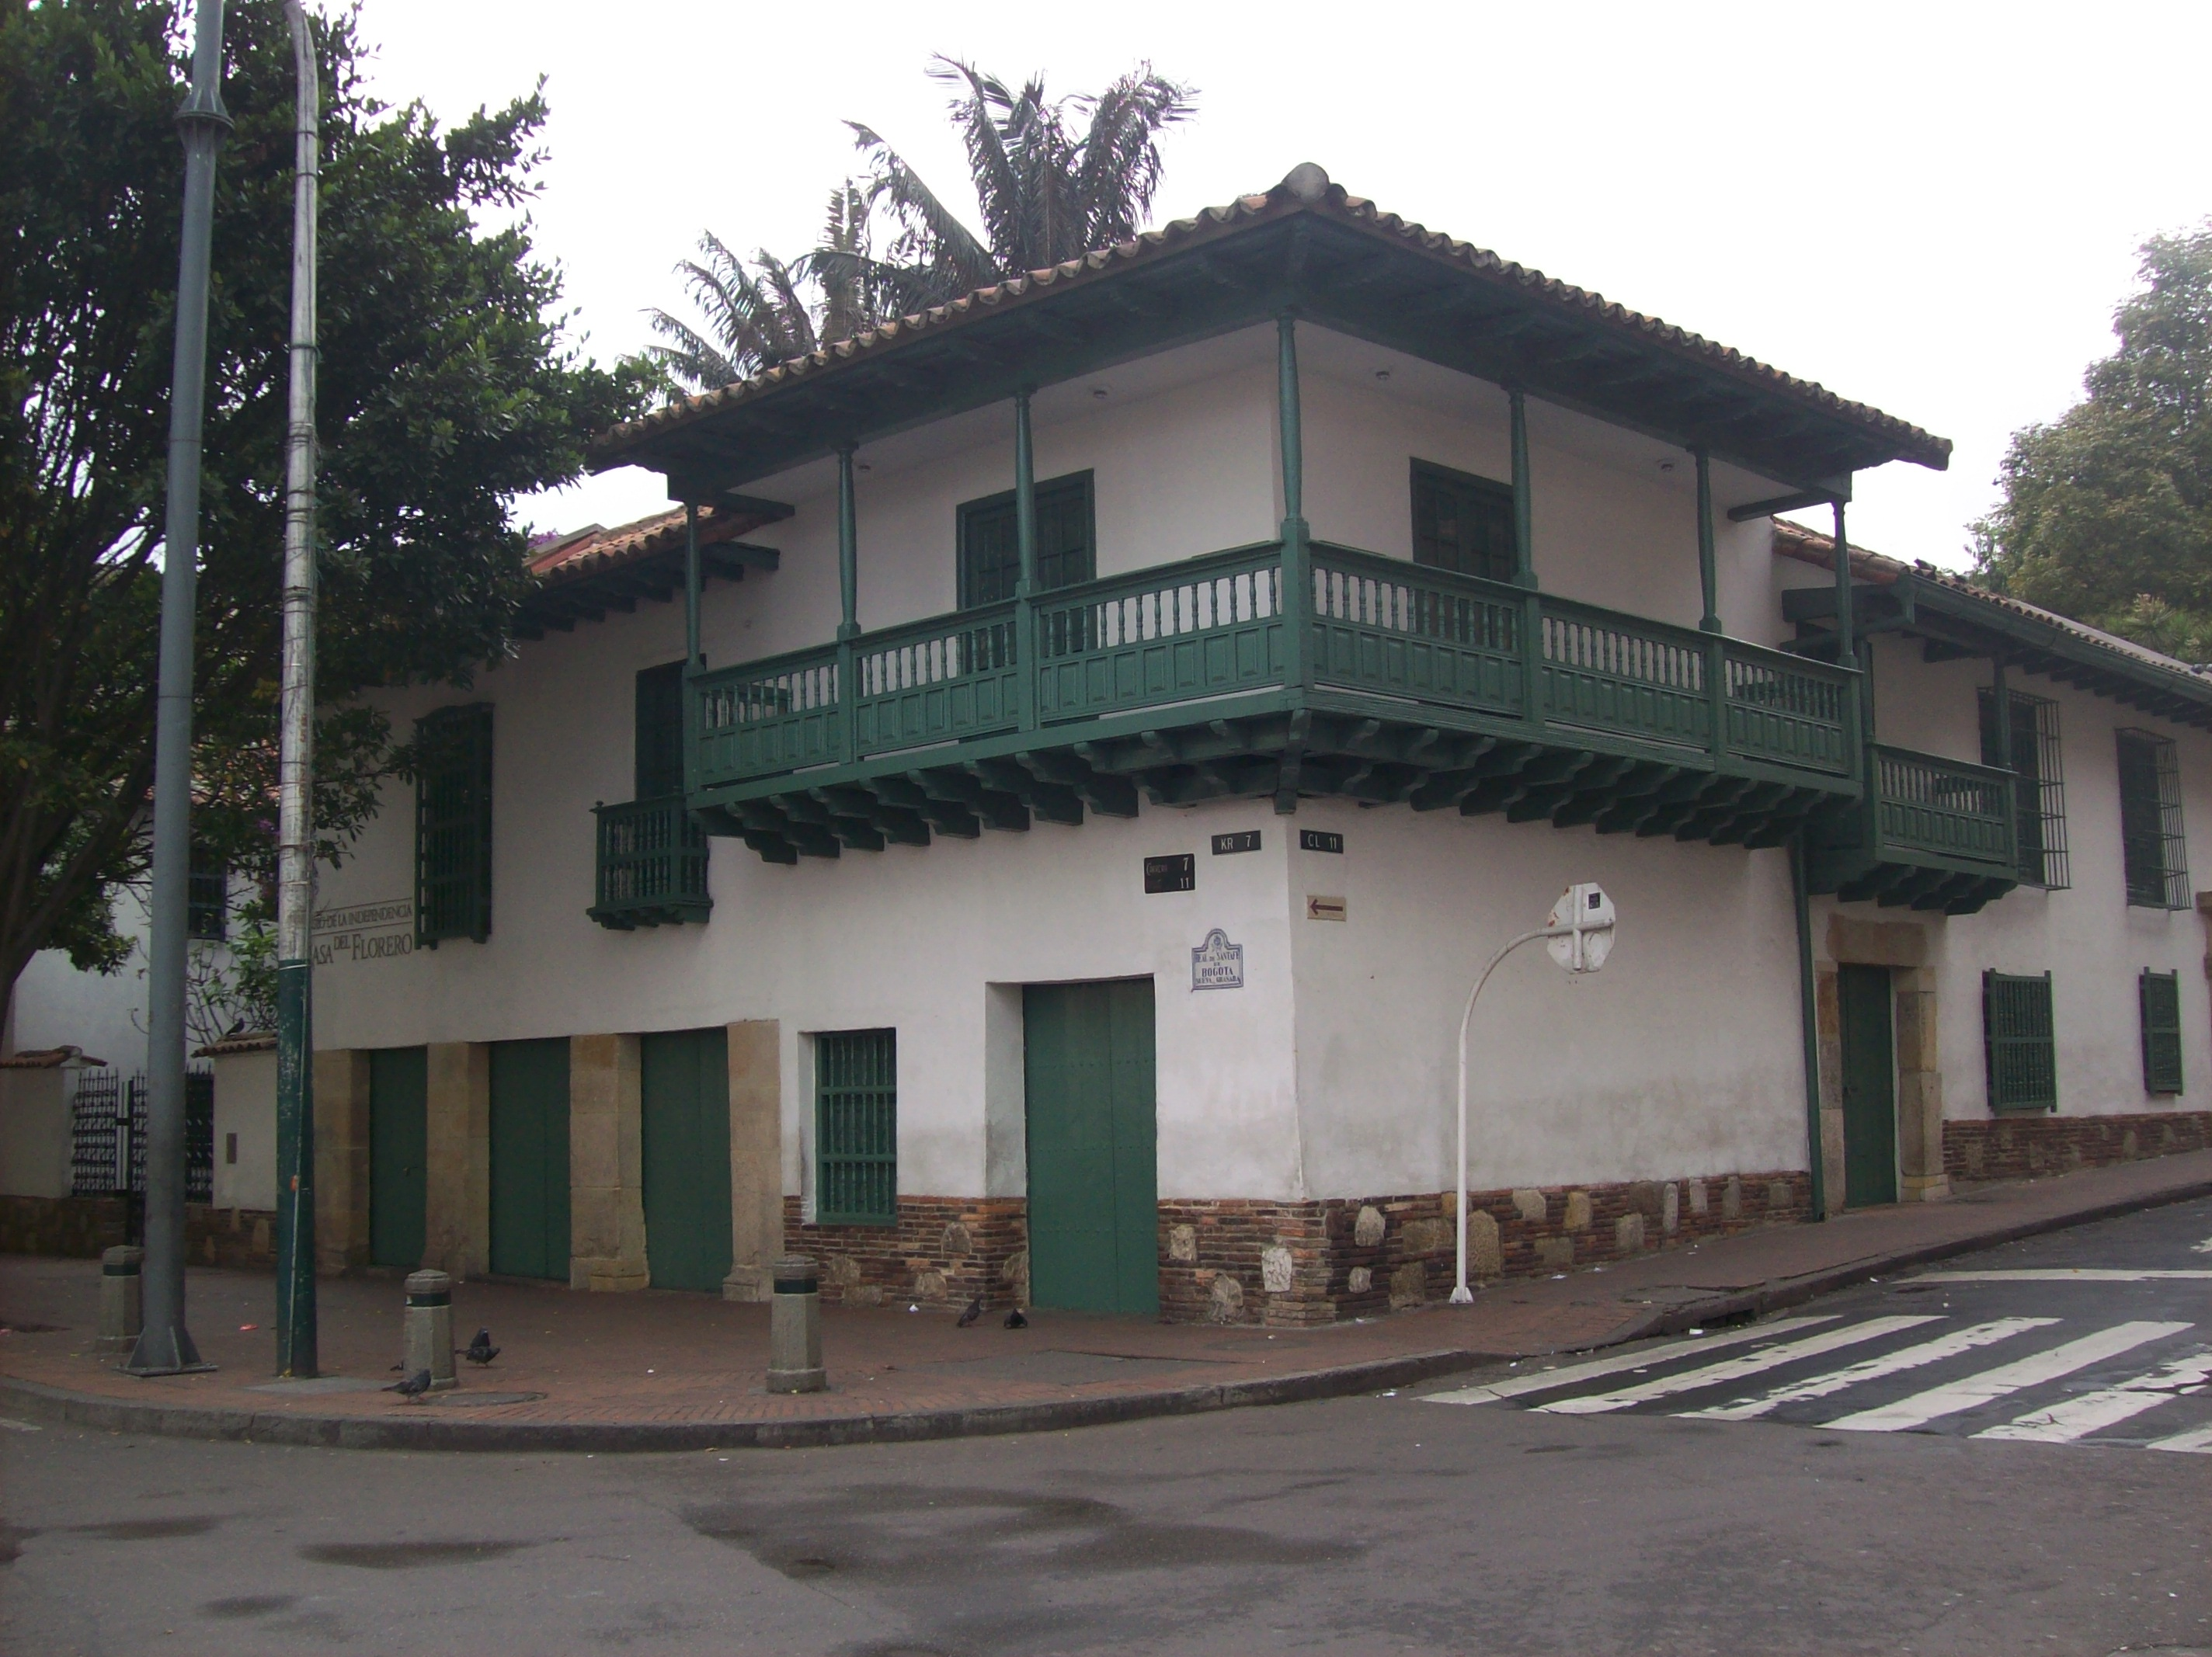 Museo de la Independencia